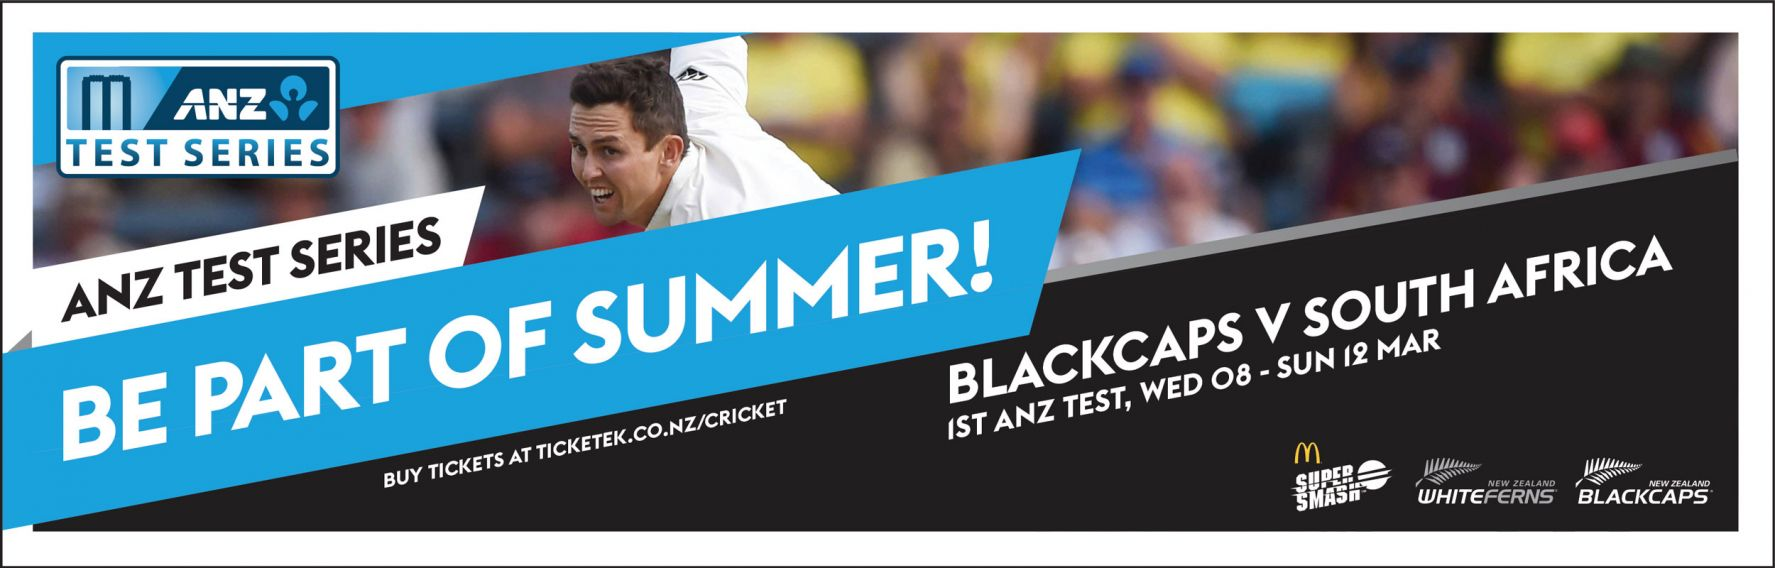 Blackcaps vs South Africa 1st ANZ Test